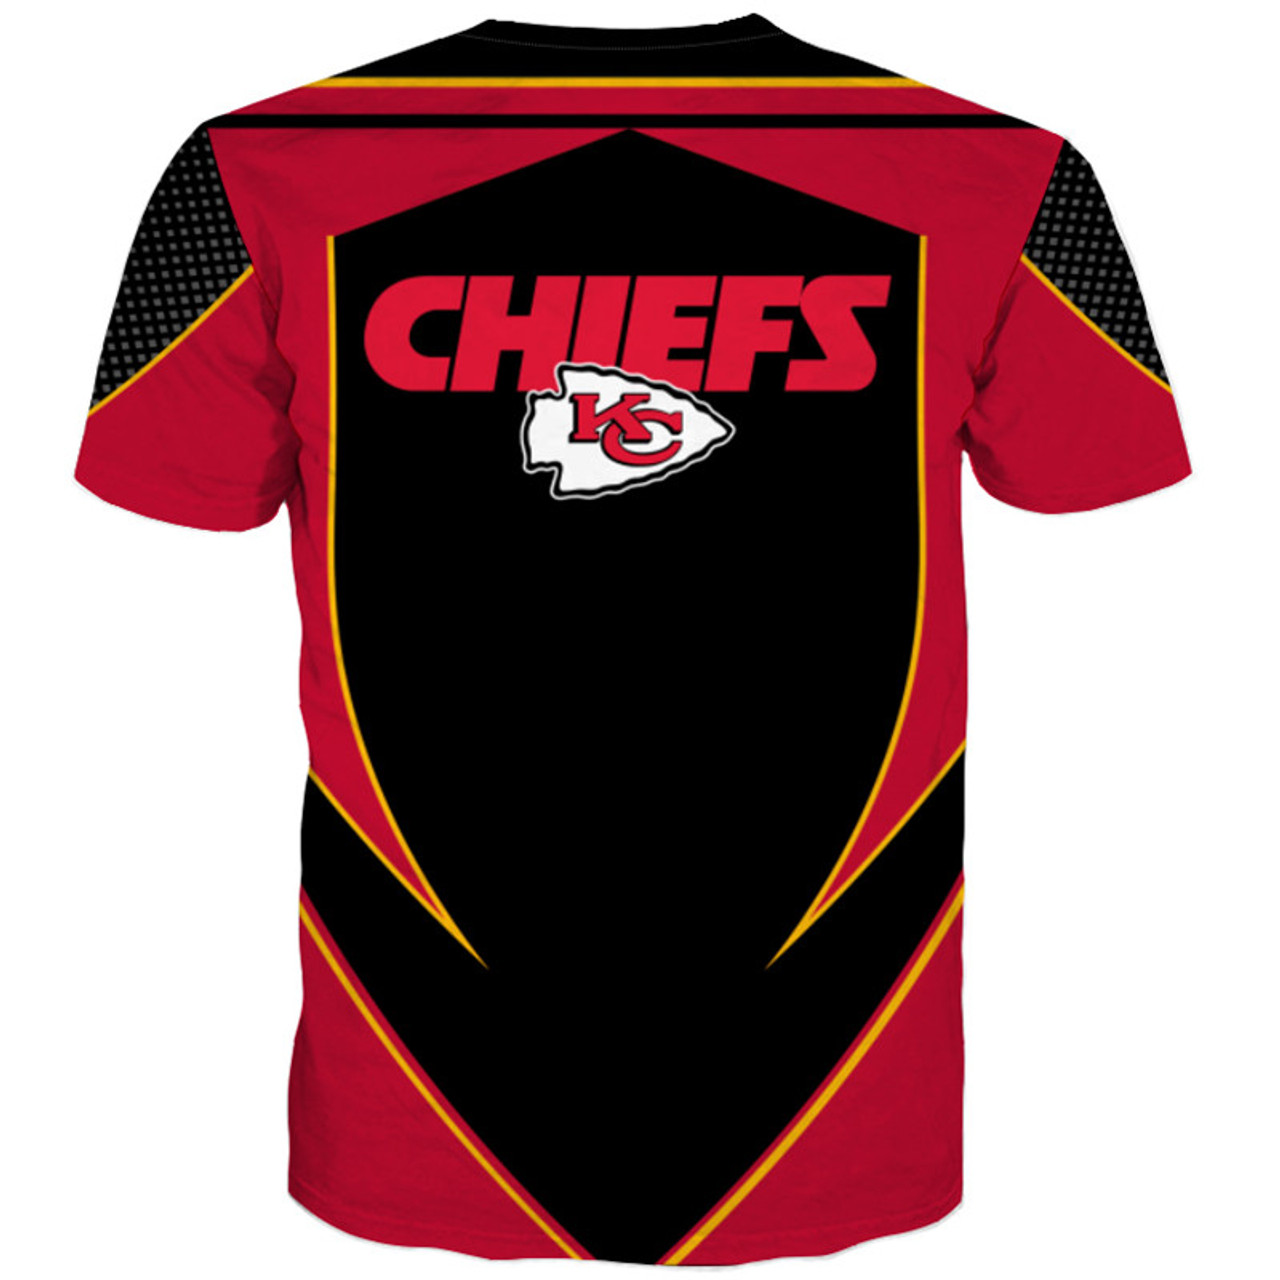 **(OFFICIAL-N.F.L.KANSAS-CITY-CHIEFS-TEAM-TEES/NEW-CUSTOM-3D-EFFECT-GRAPHIC-PRINTED-DOUBLE-SIDED-DESIGNED/ALL-OVER-OFFICIAL-CHIEFS-LOGOS & IN-OFFICIAL-ALL-CHIEFS-TEAM-COLORS/NICE-PREMIUM-OFFICIAL-N.F.L.CHIEFS-TRENDY-TEAM-TEES)**